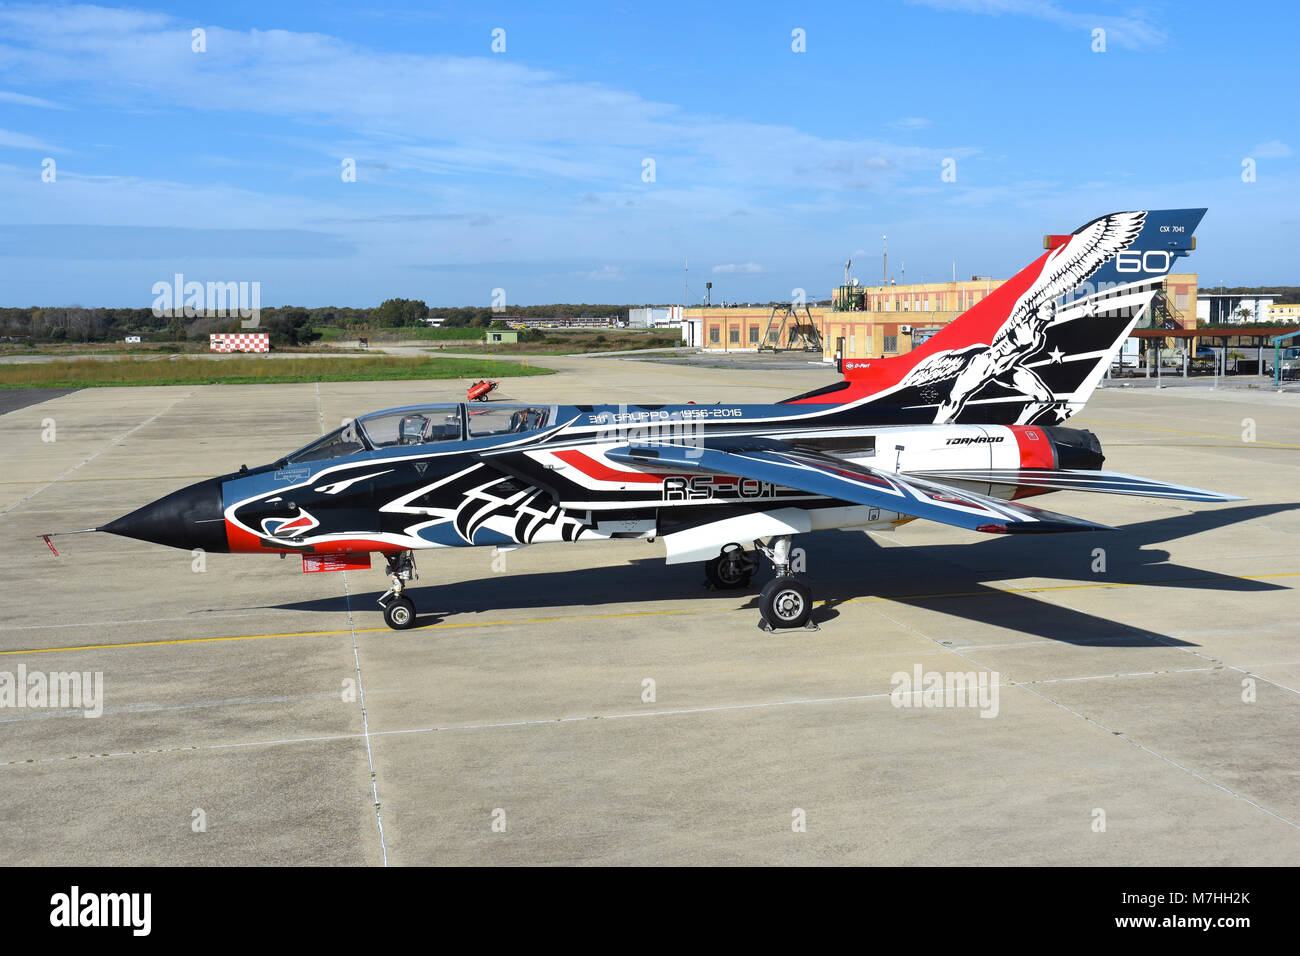 Italian Air Force Tornado special colour for the 60th Anniversary of Flying Test Wing. Stock Photo